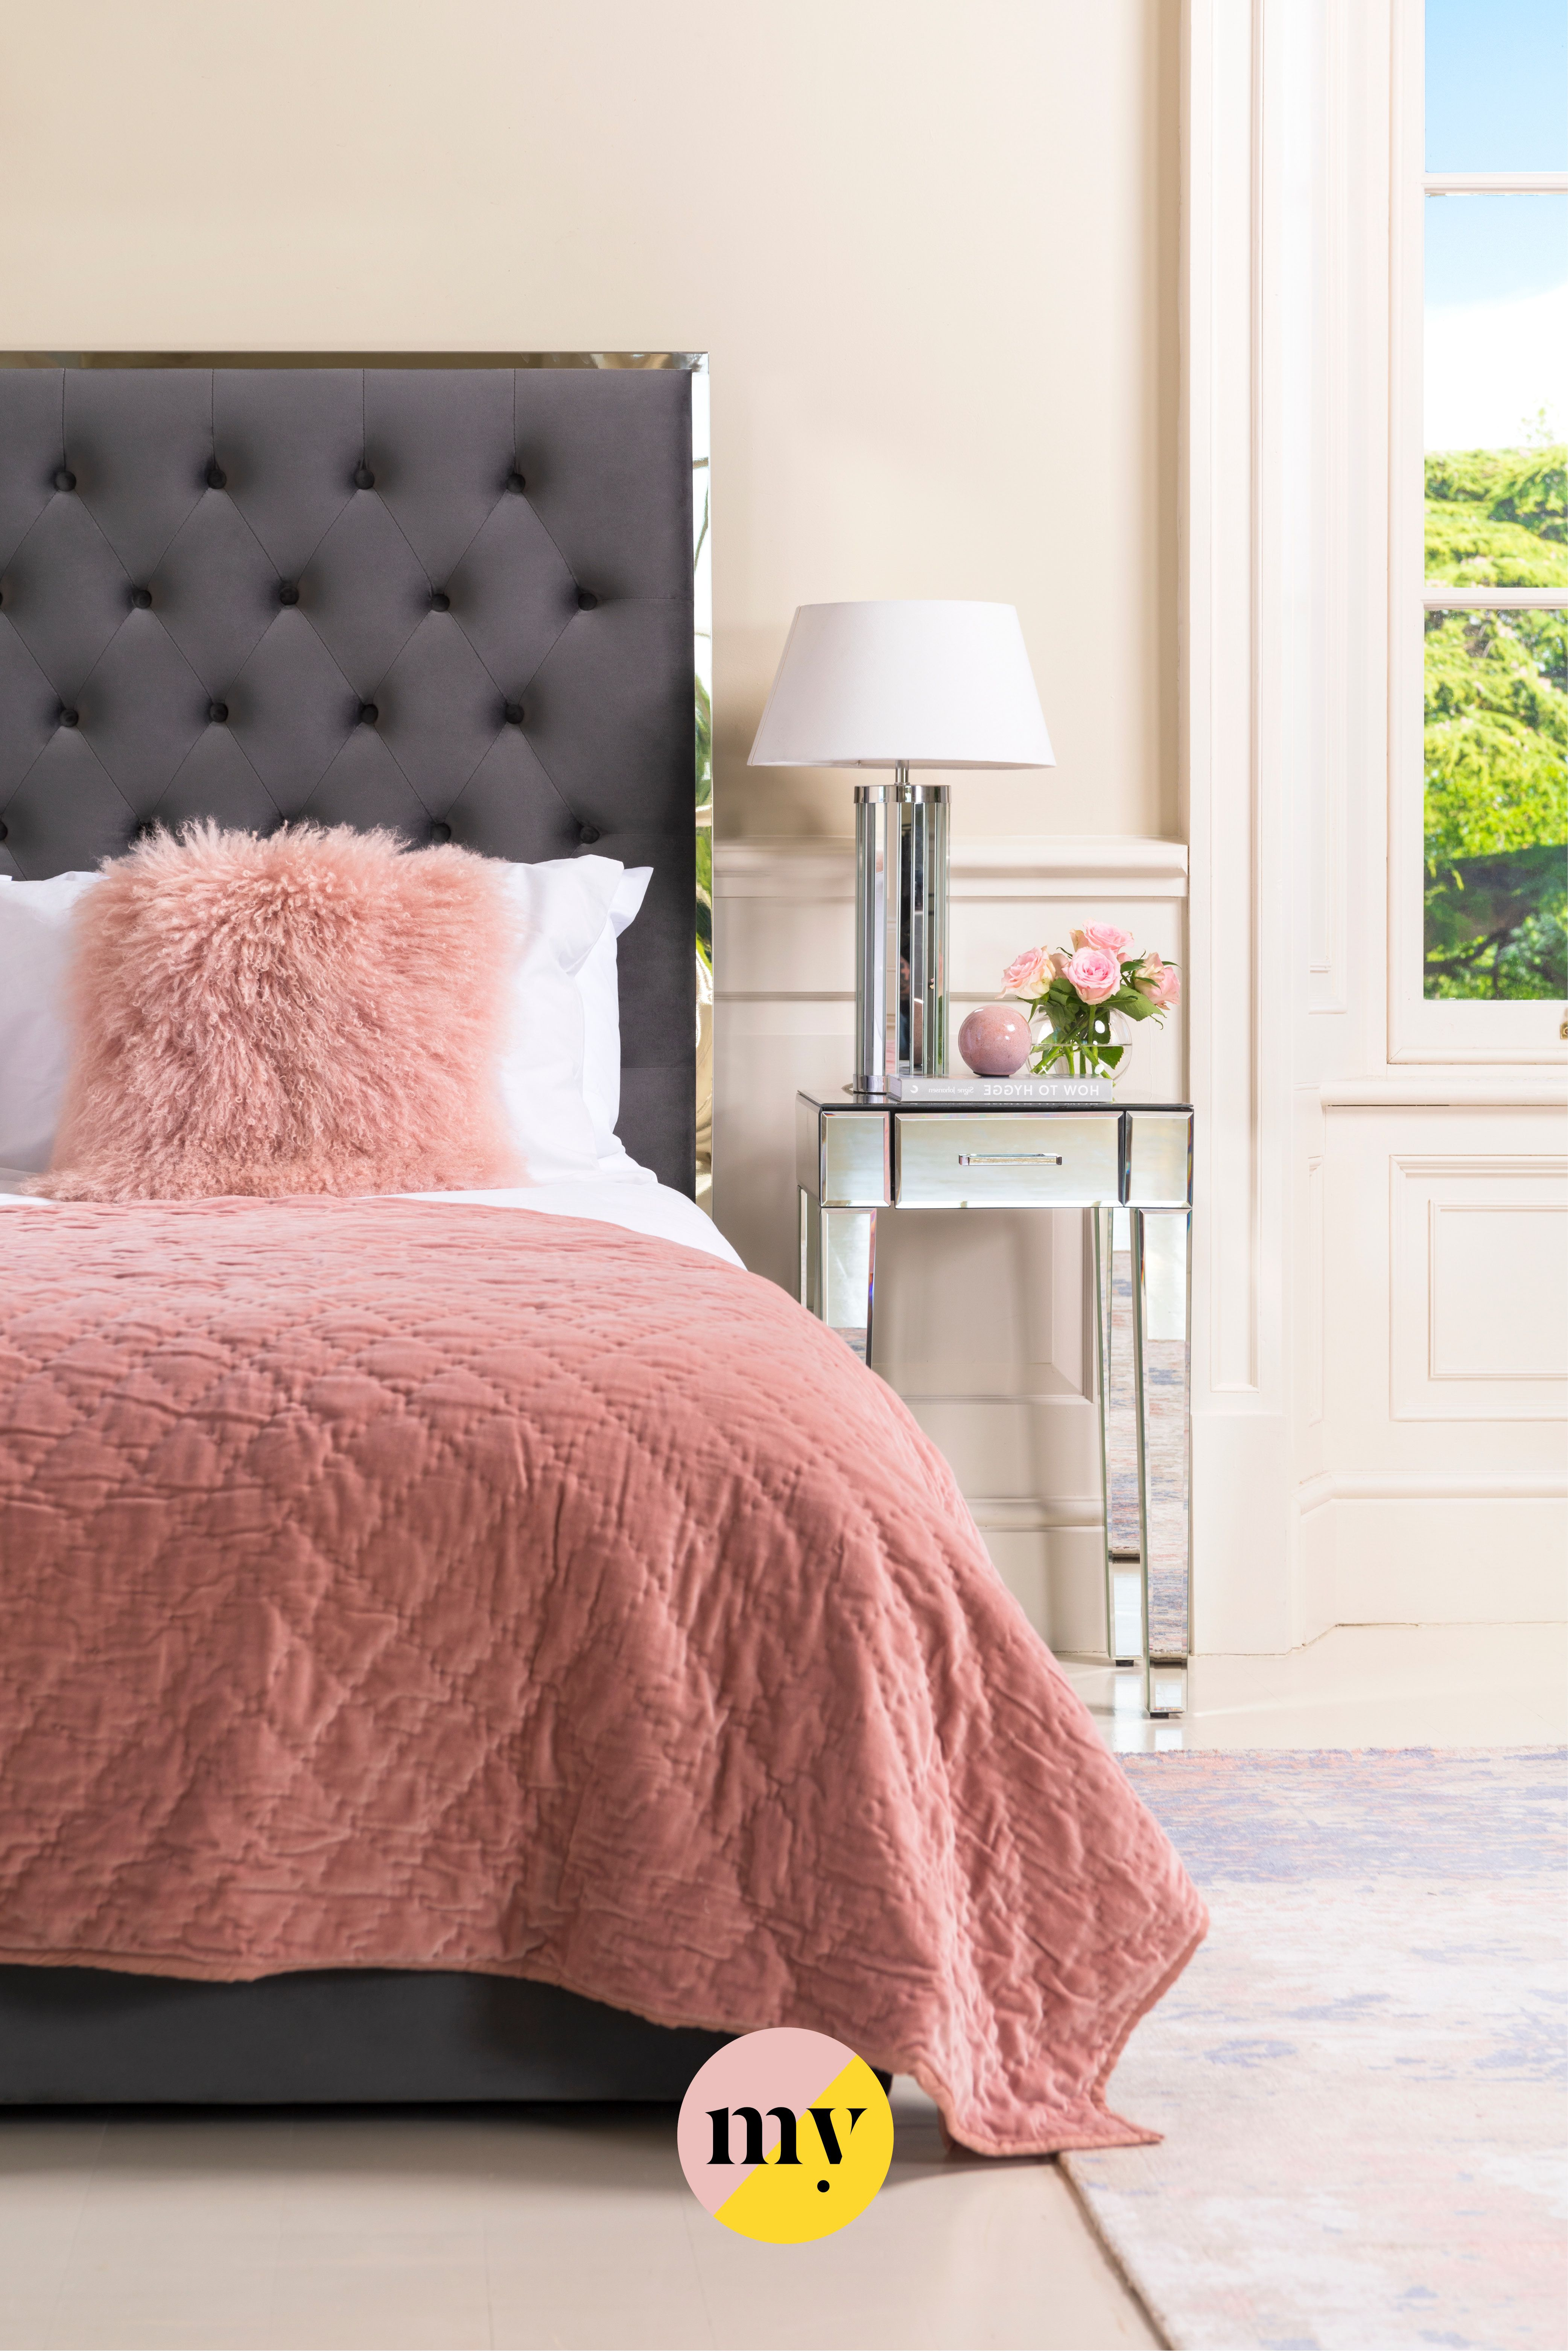 This bed has an impressive tall headboard with deep